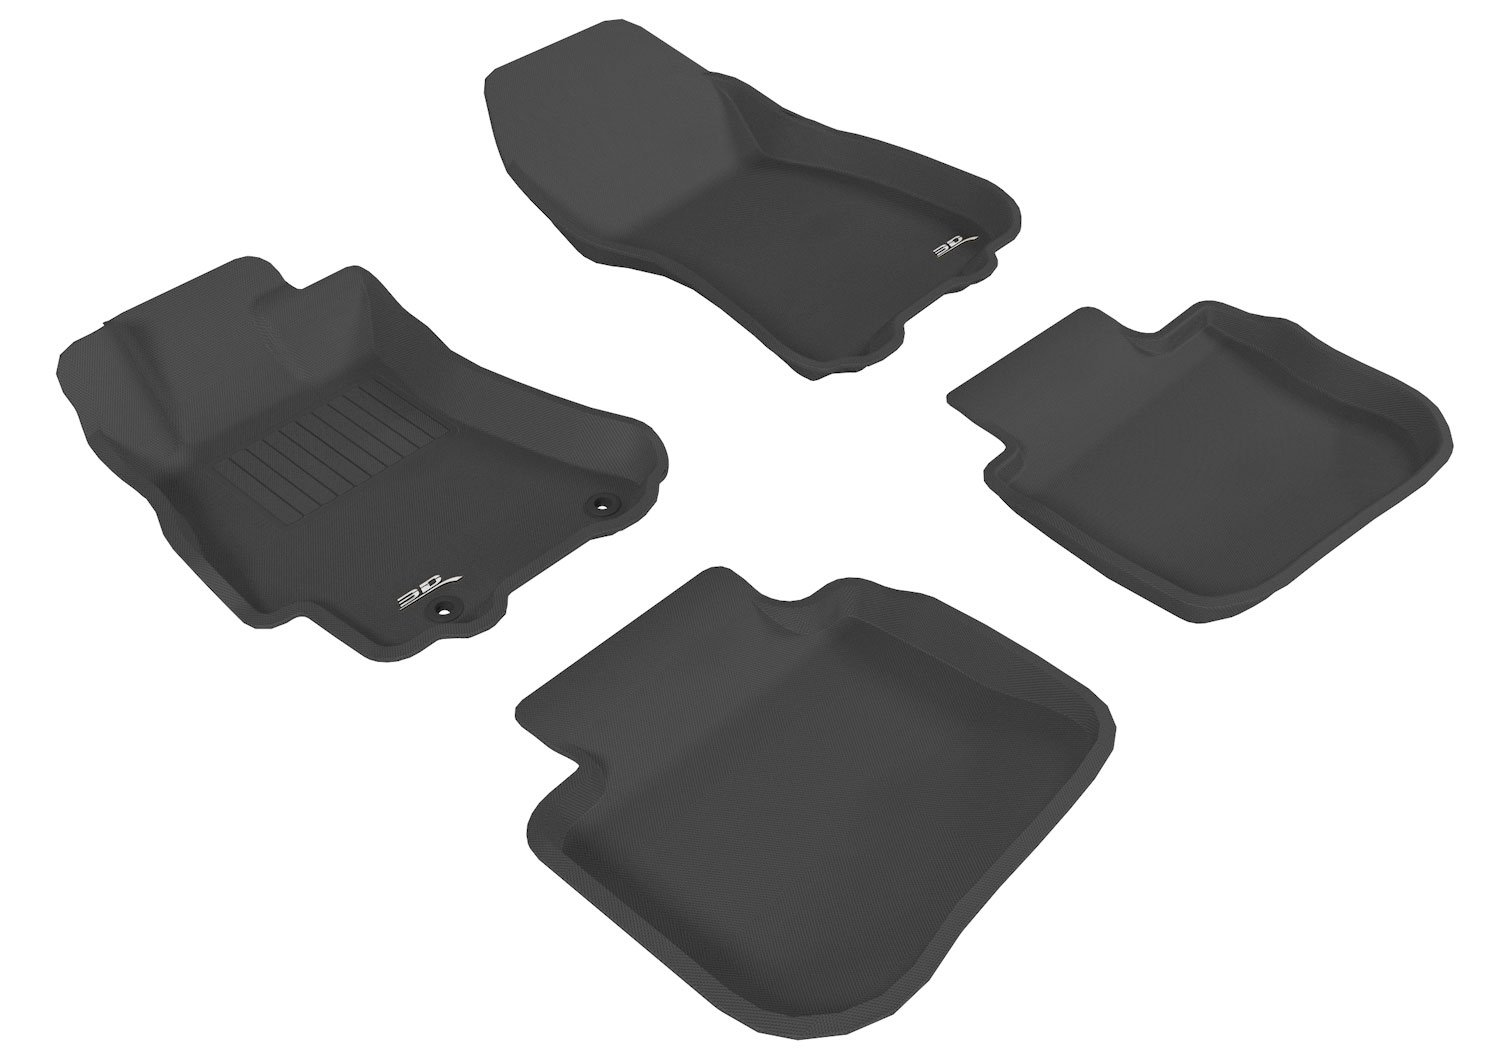 80off 3d Maxpider Complete Set Custom Fit All Weather Floor Mat For Subaru Outback Torque Converter Select